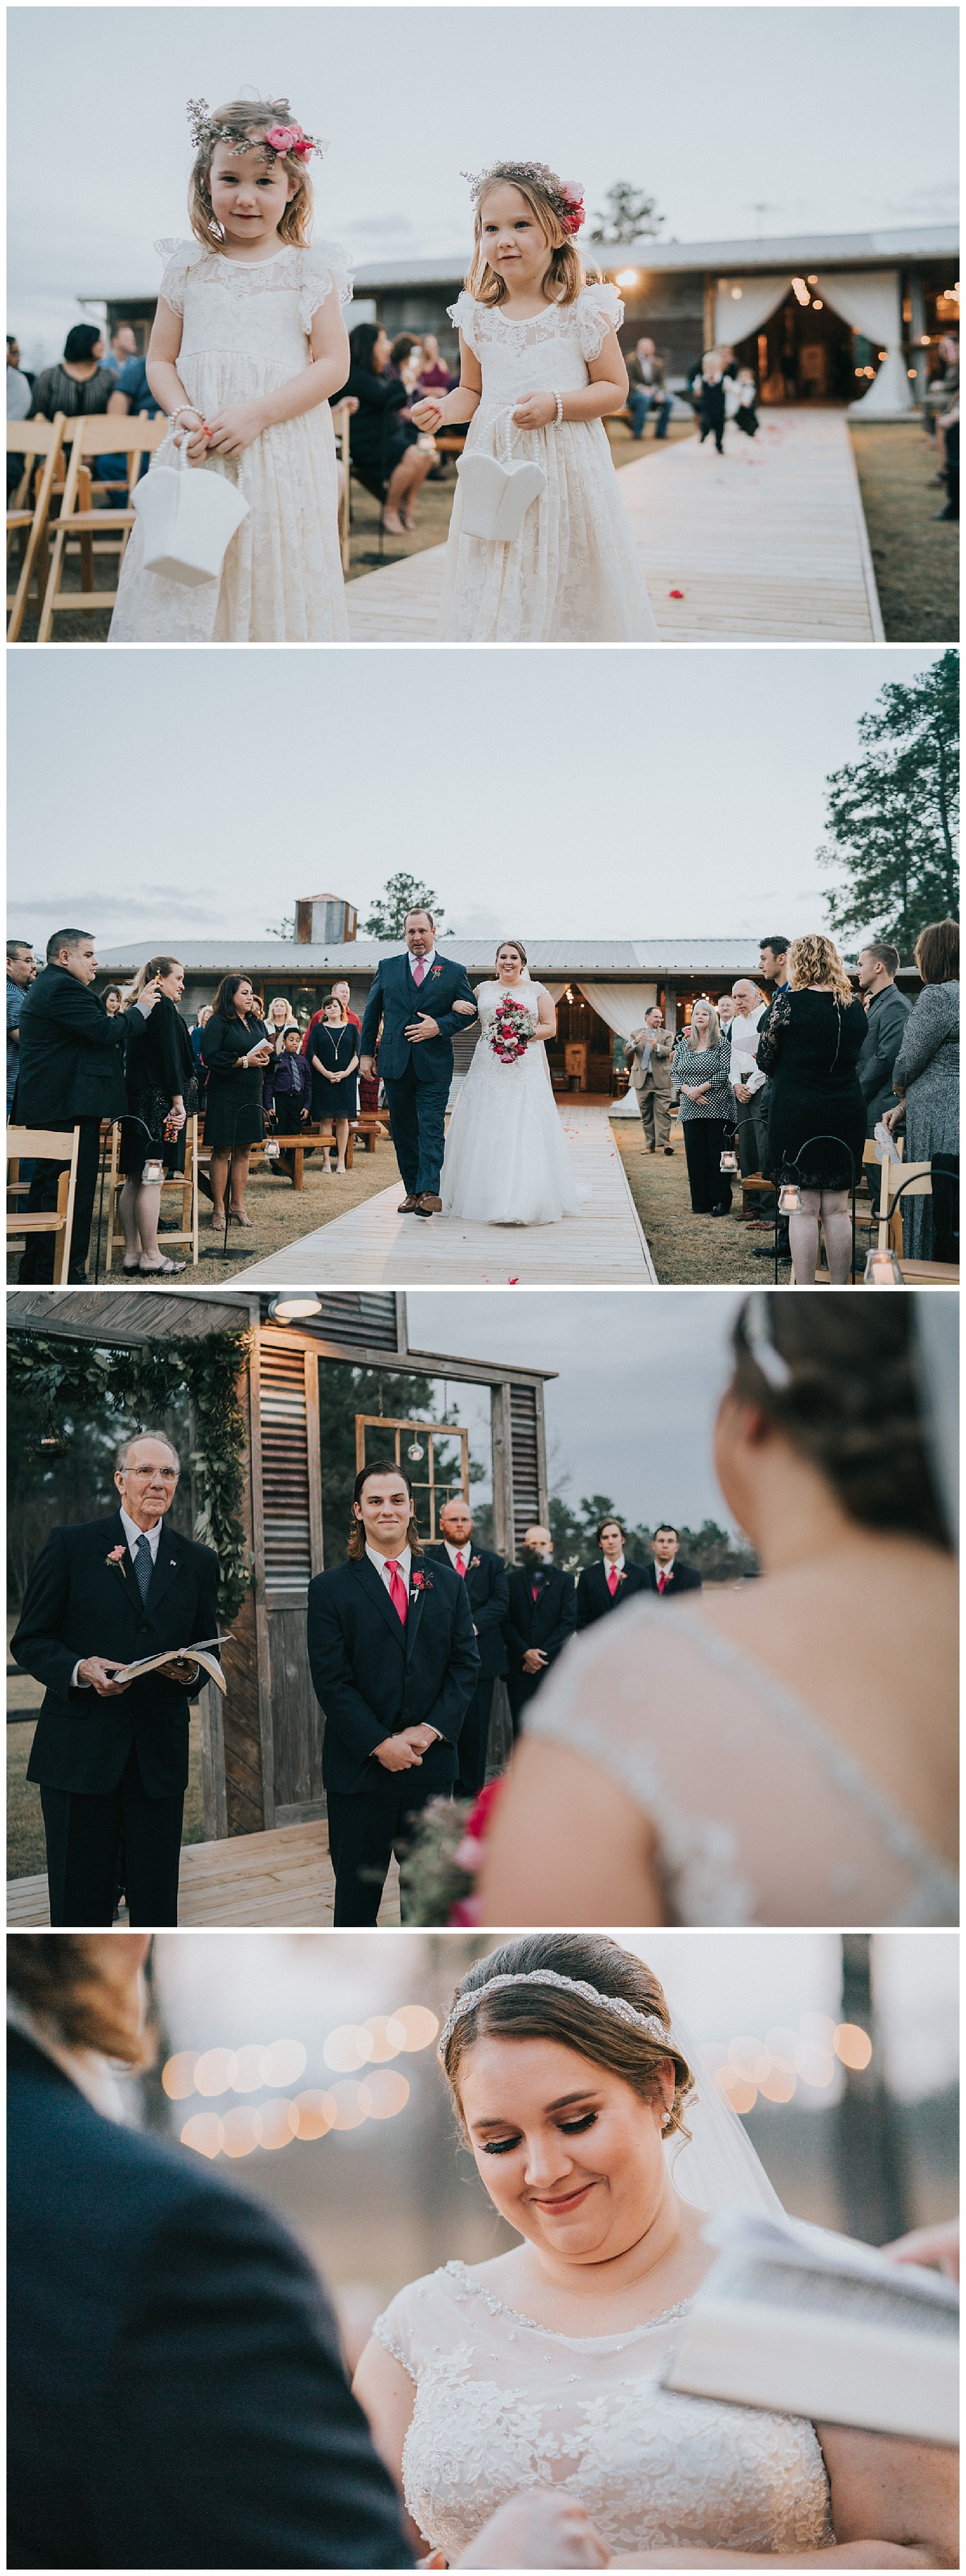 ceremony - Pines Barn, Houston, TX